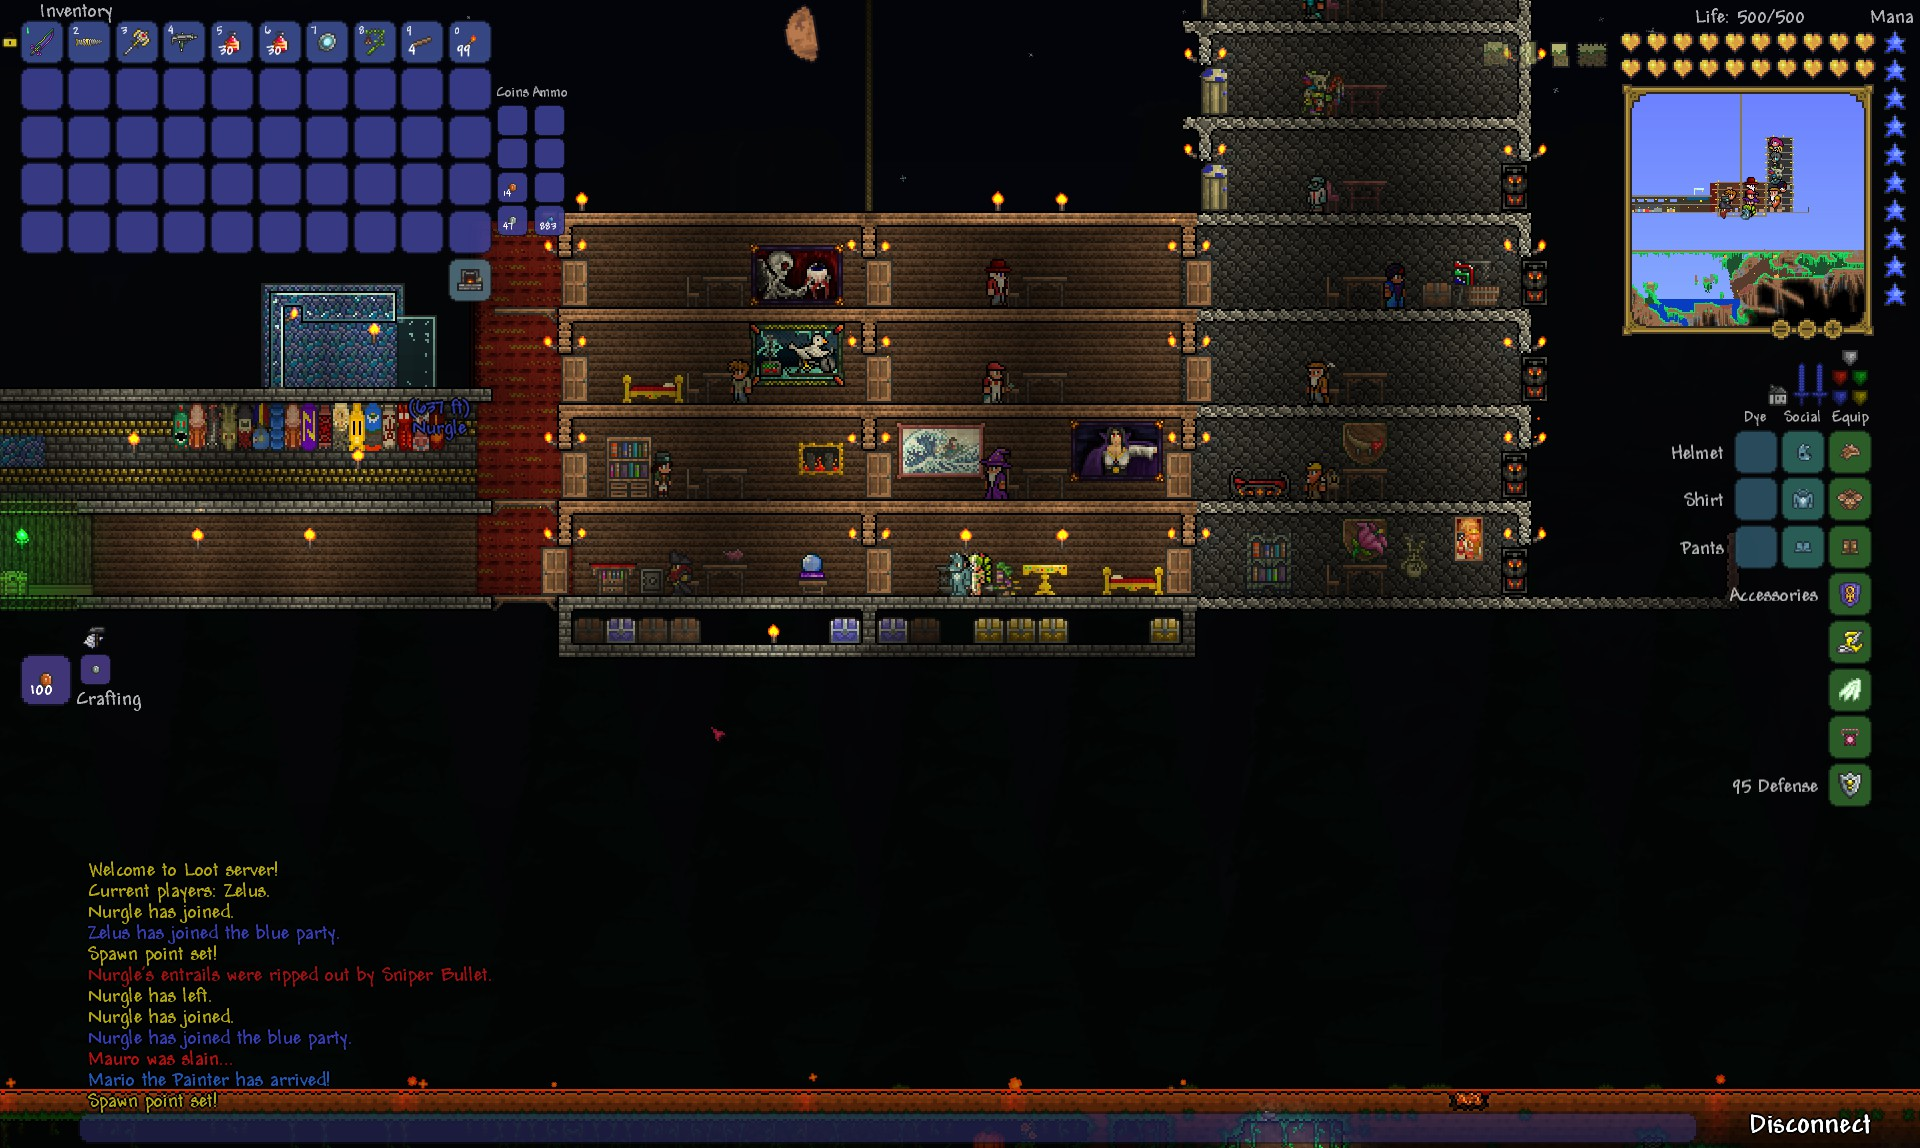 Terraria 2014 Refresher Review Mmohuts Wiring Guide Building A New Base Nurgle Dies Lot